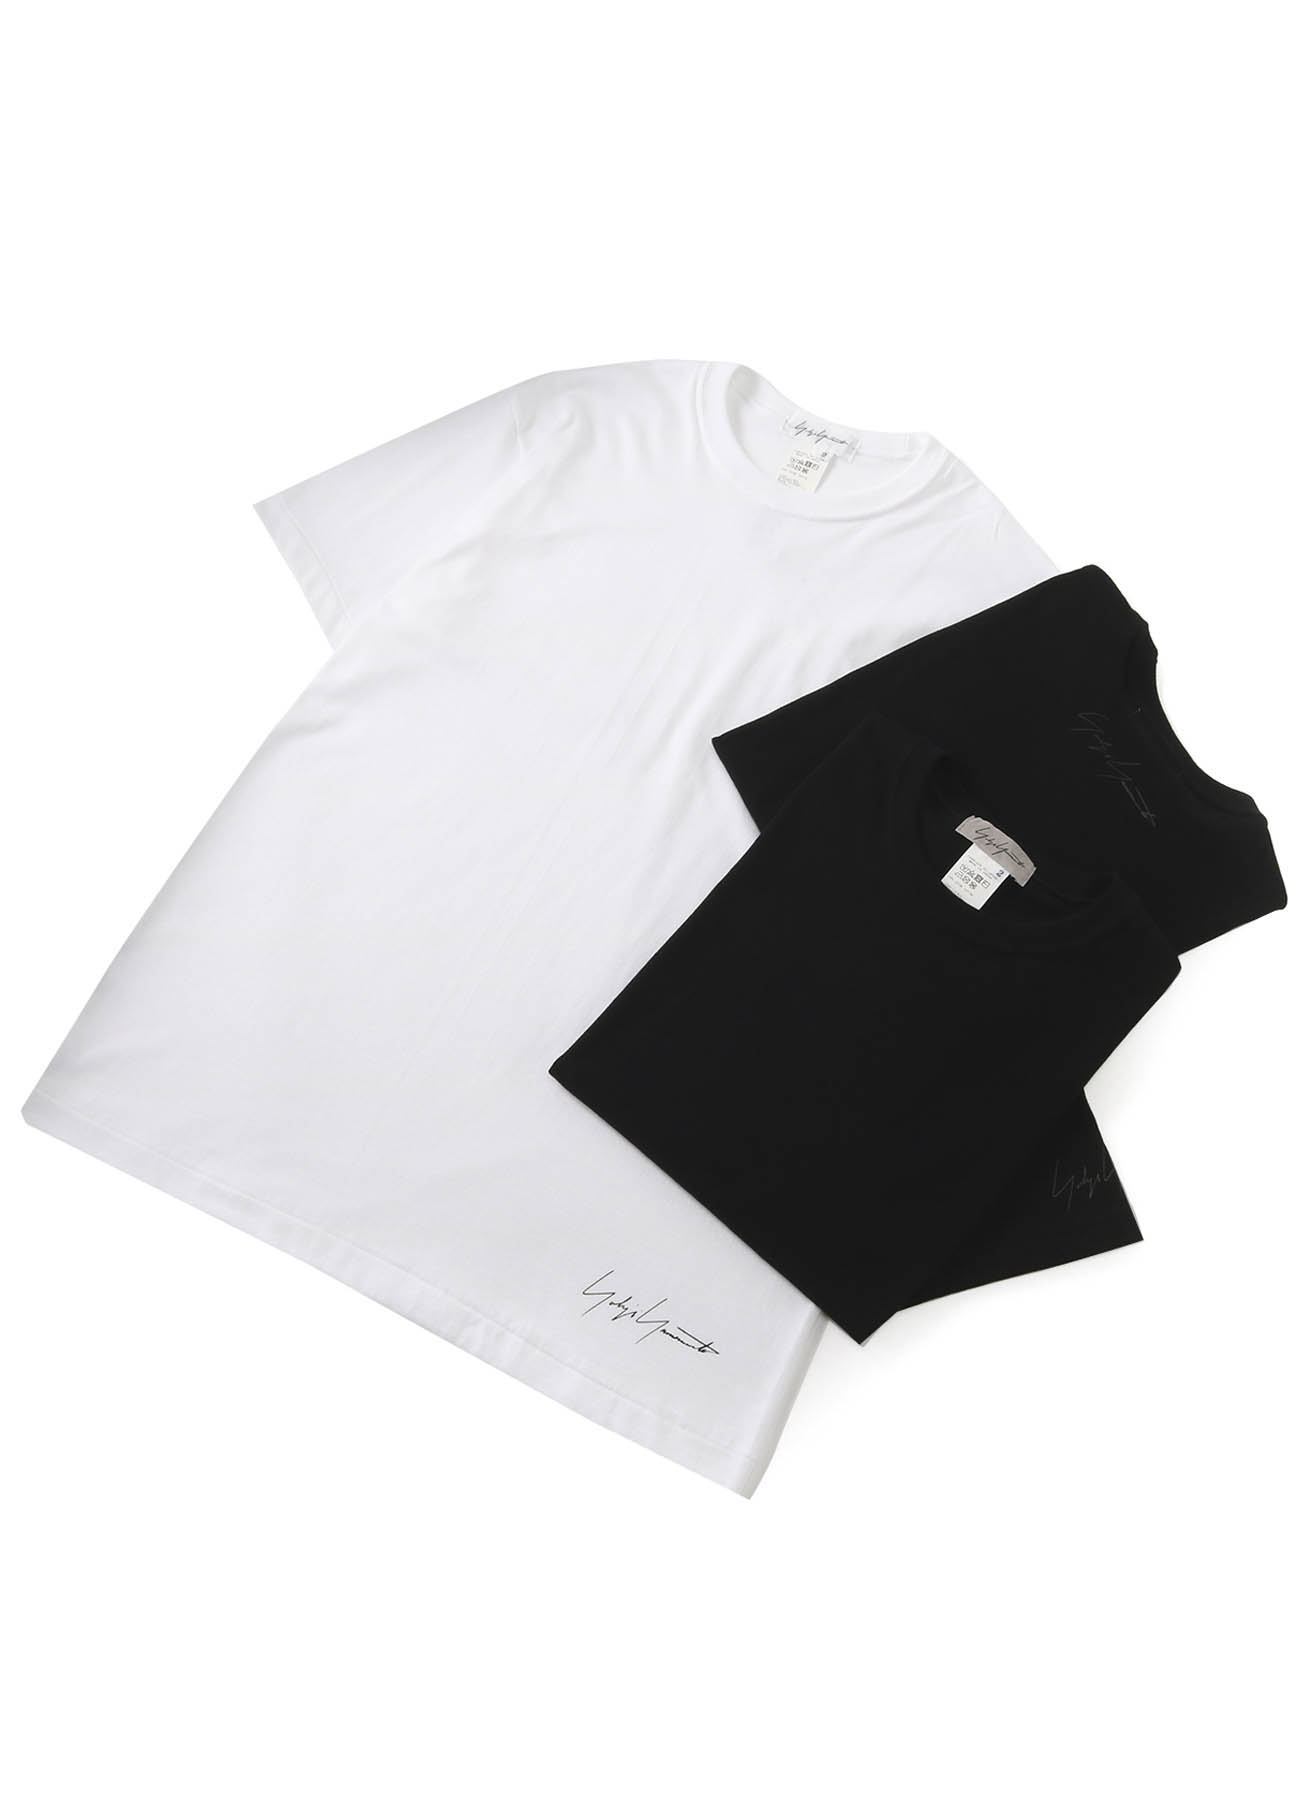 3pack T